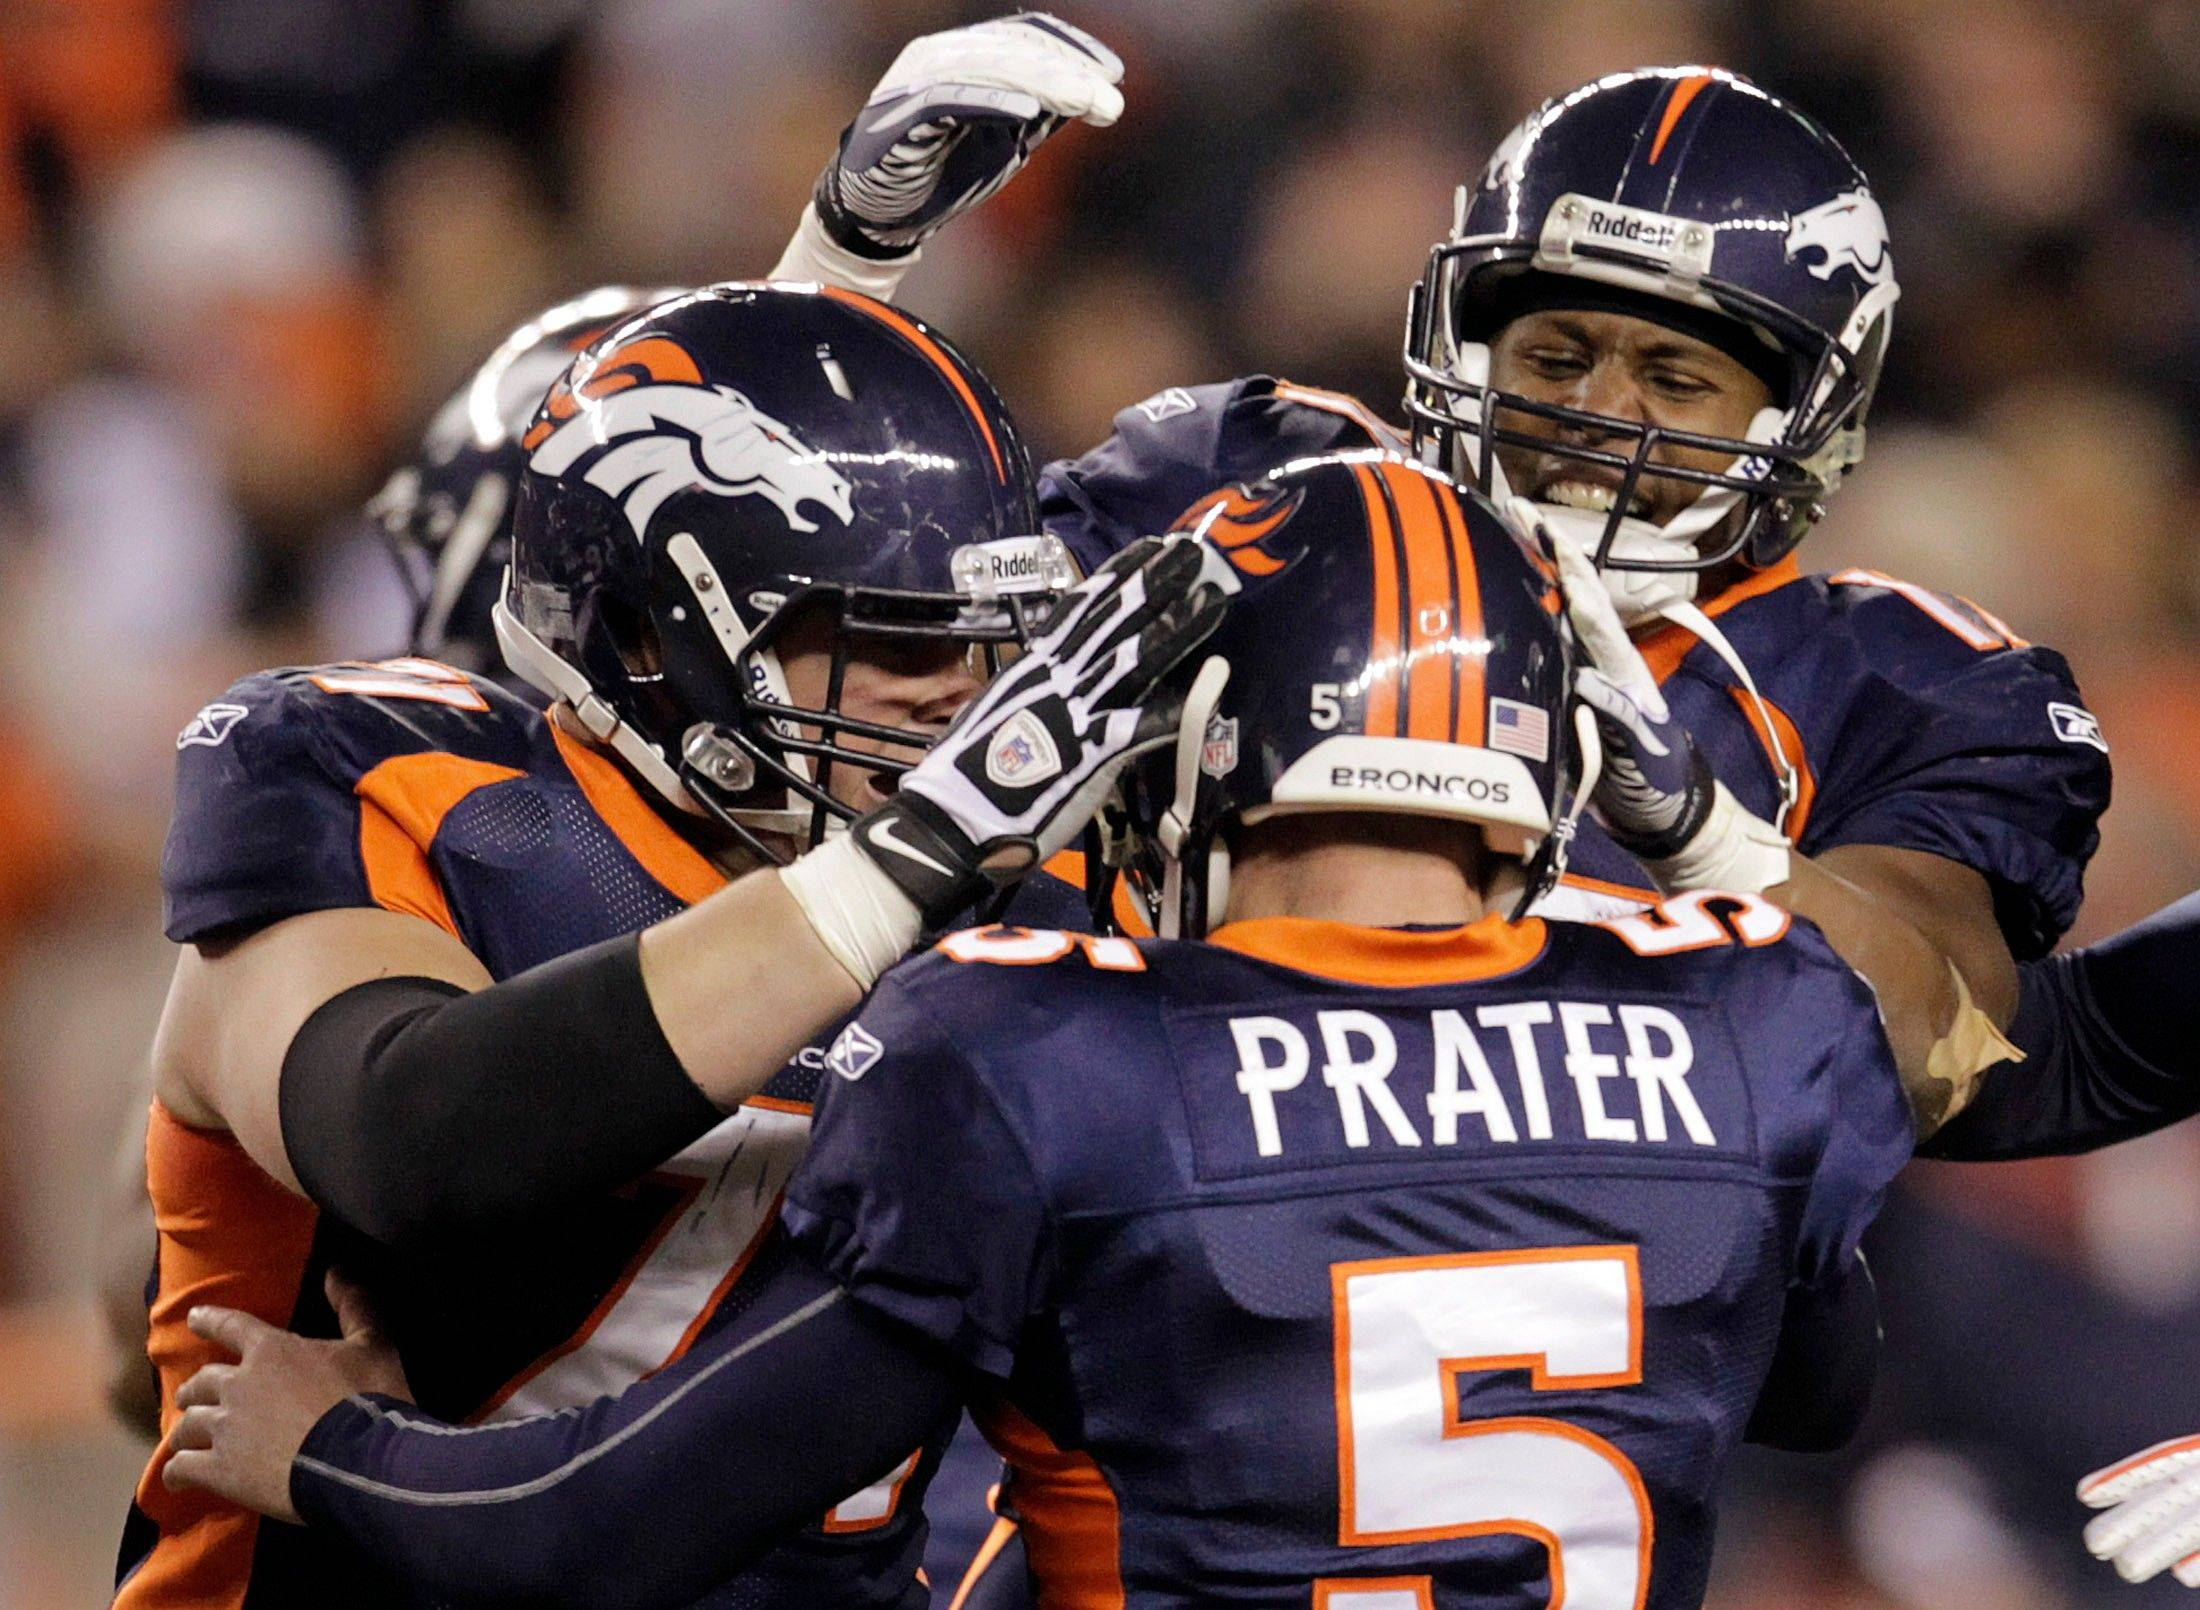 Denver Broncos kicker Matt Prater (5) is congratulated by teammates after kicking a 59-yard field goal at the end of the fourth quarter.